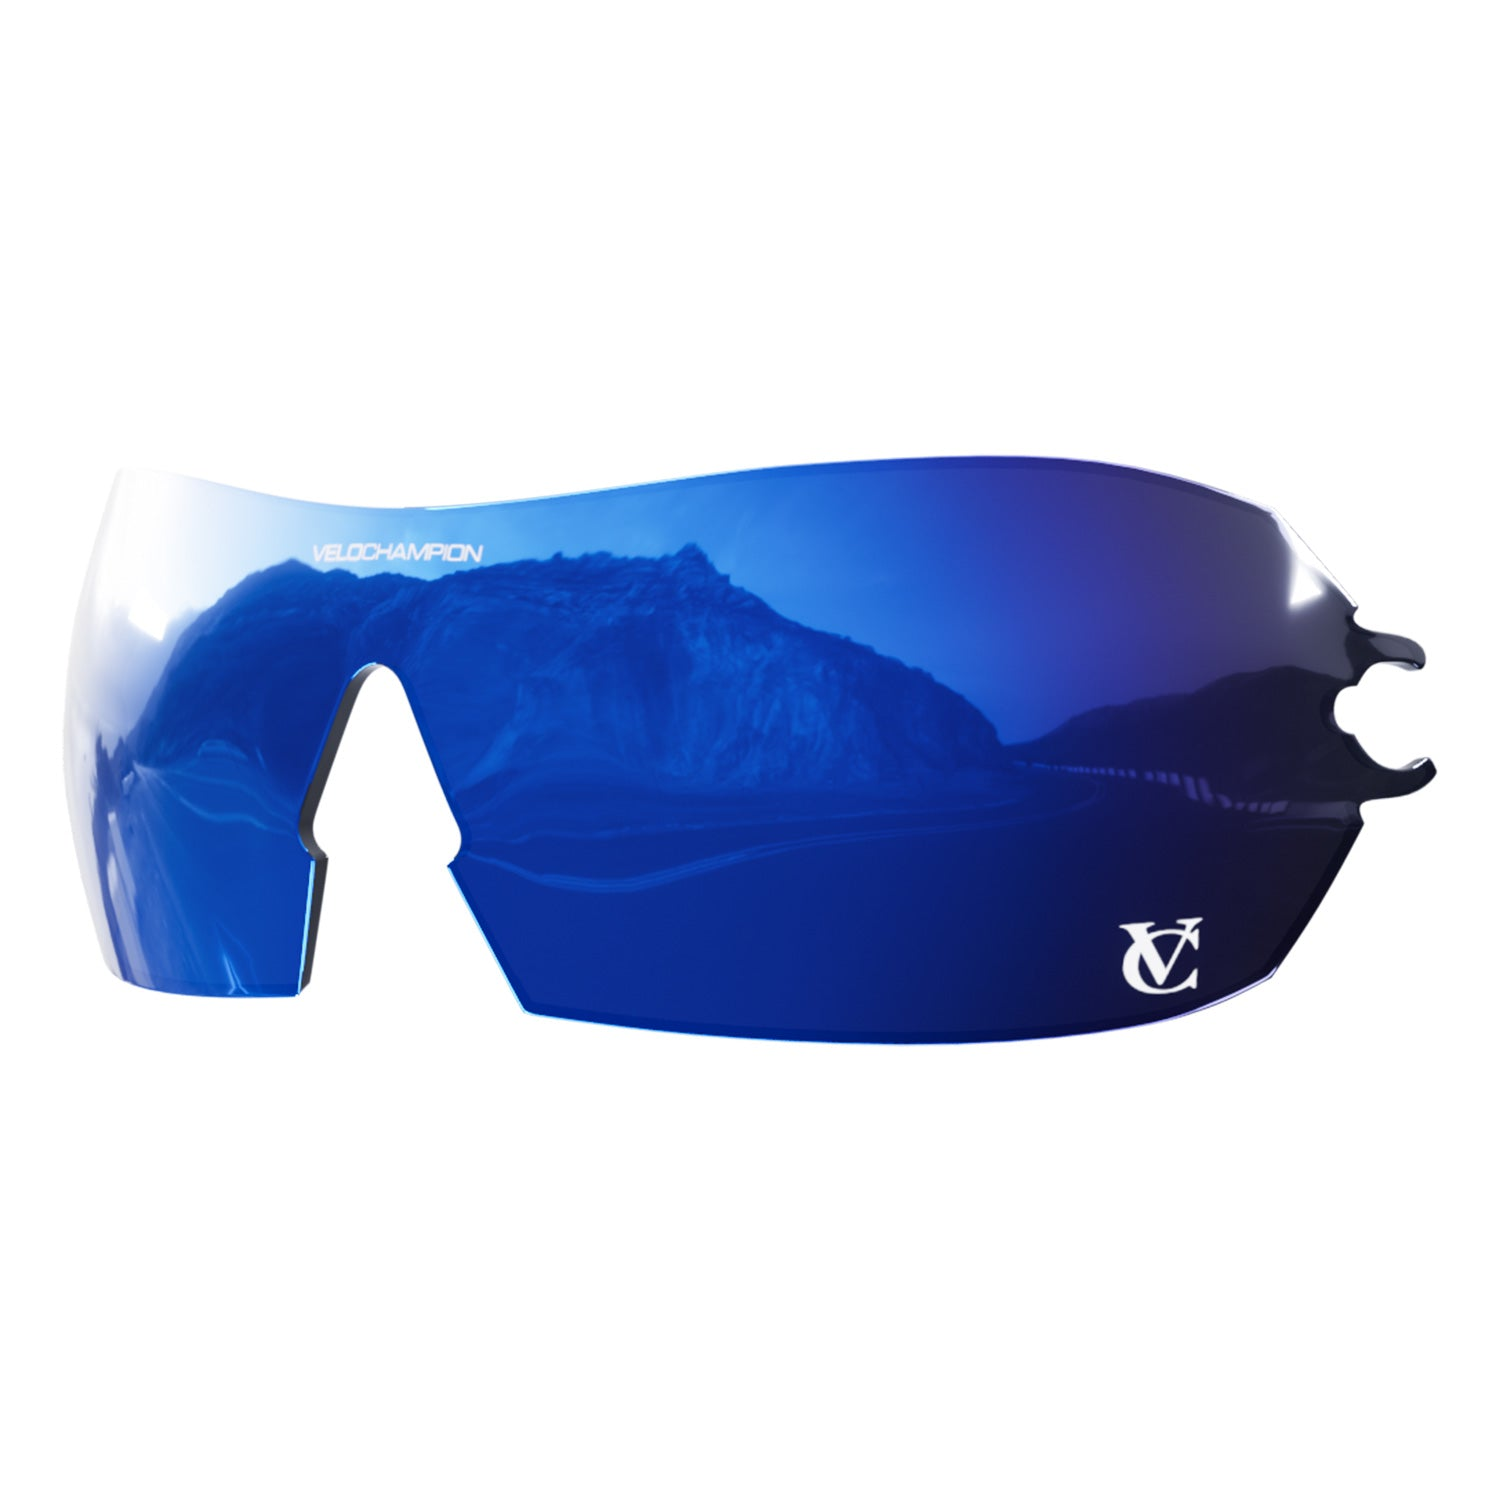 Customisable Hypersonic cycling sunglasses blue revo lens | VeloChampion